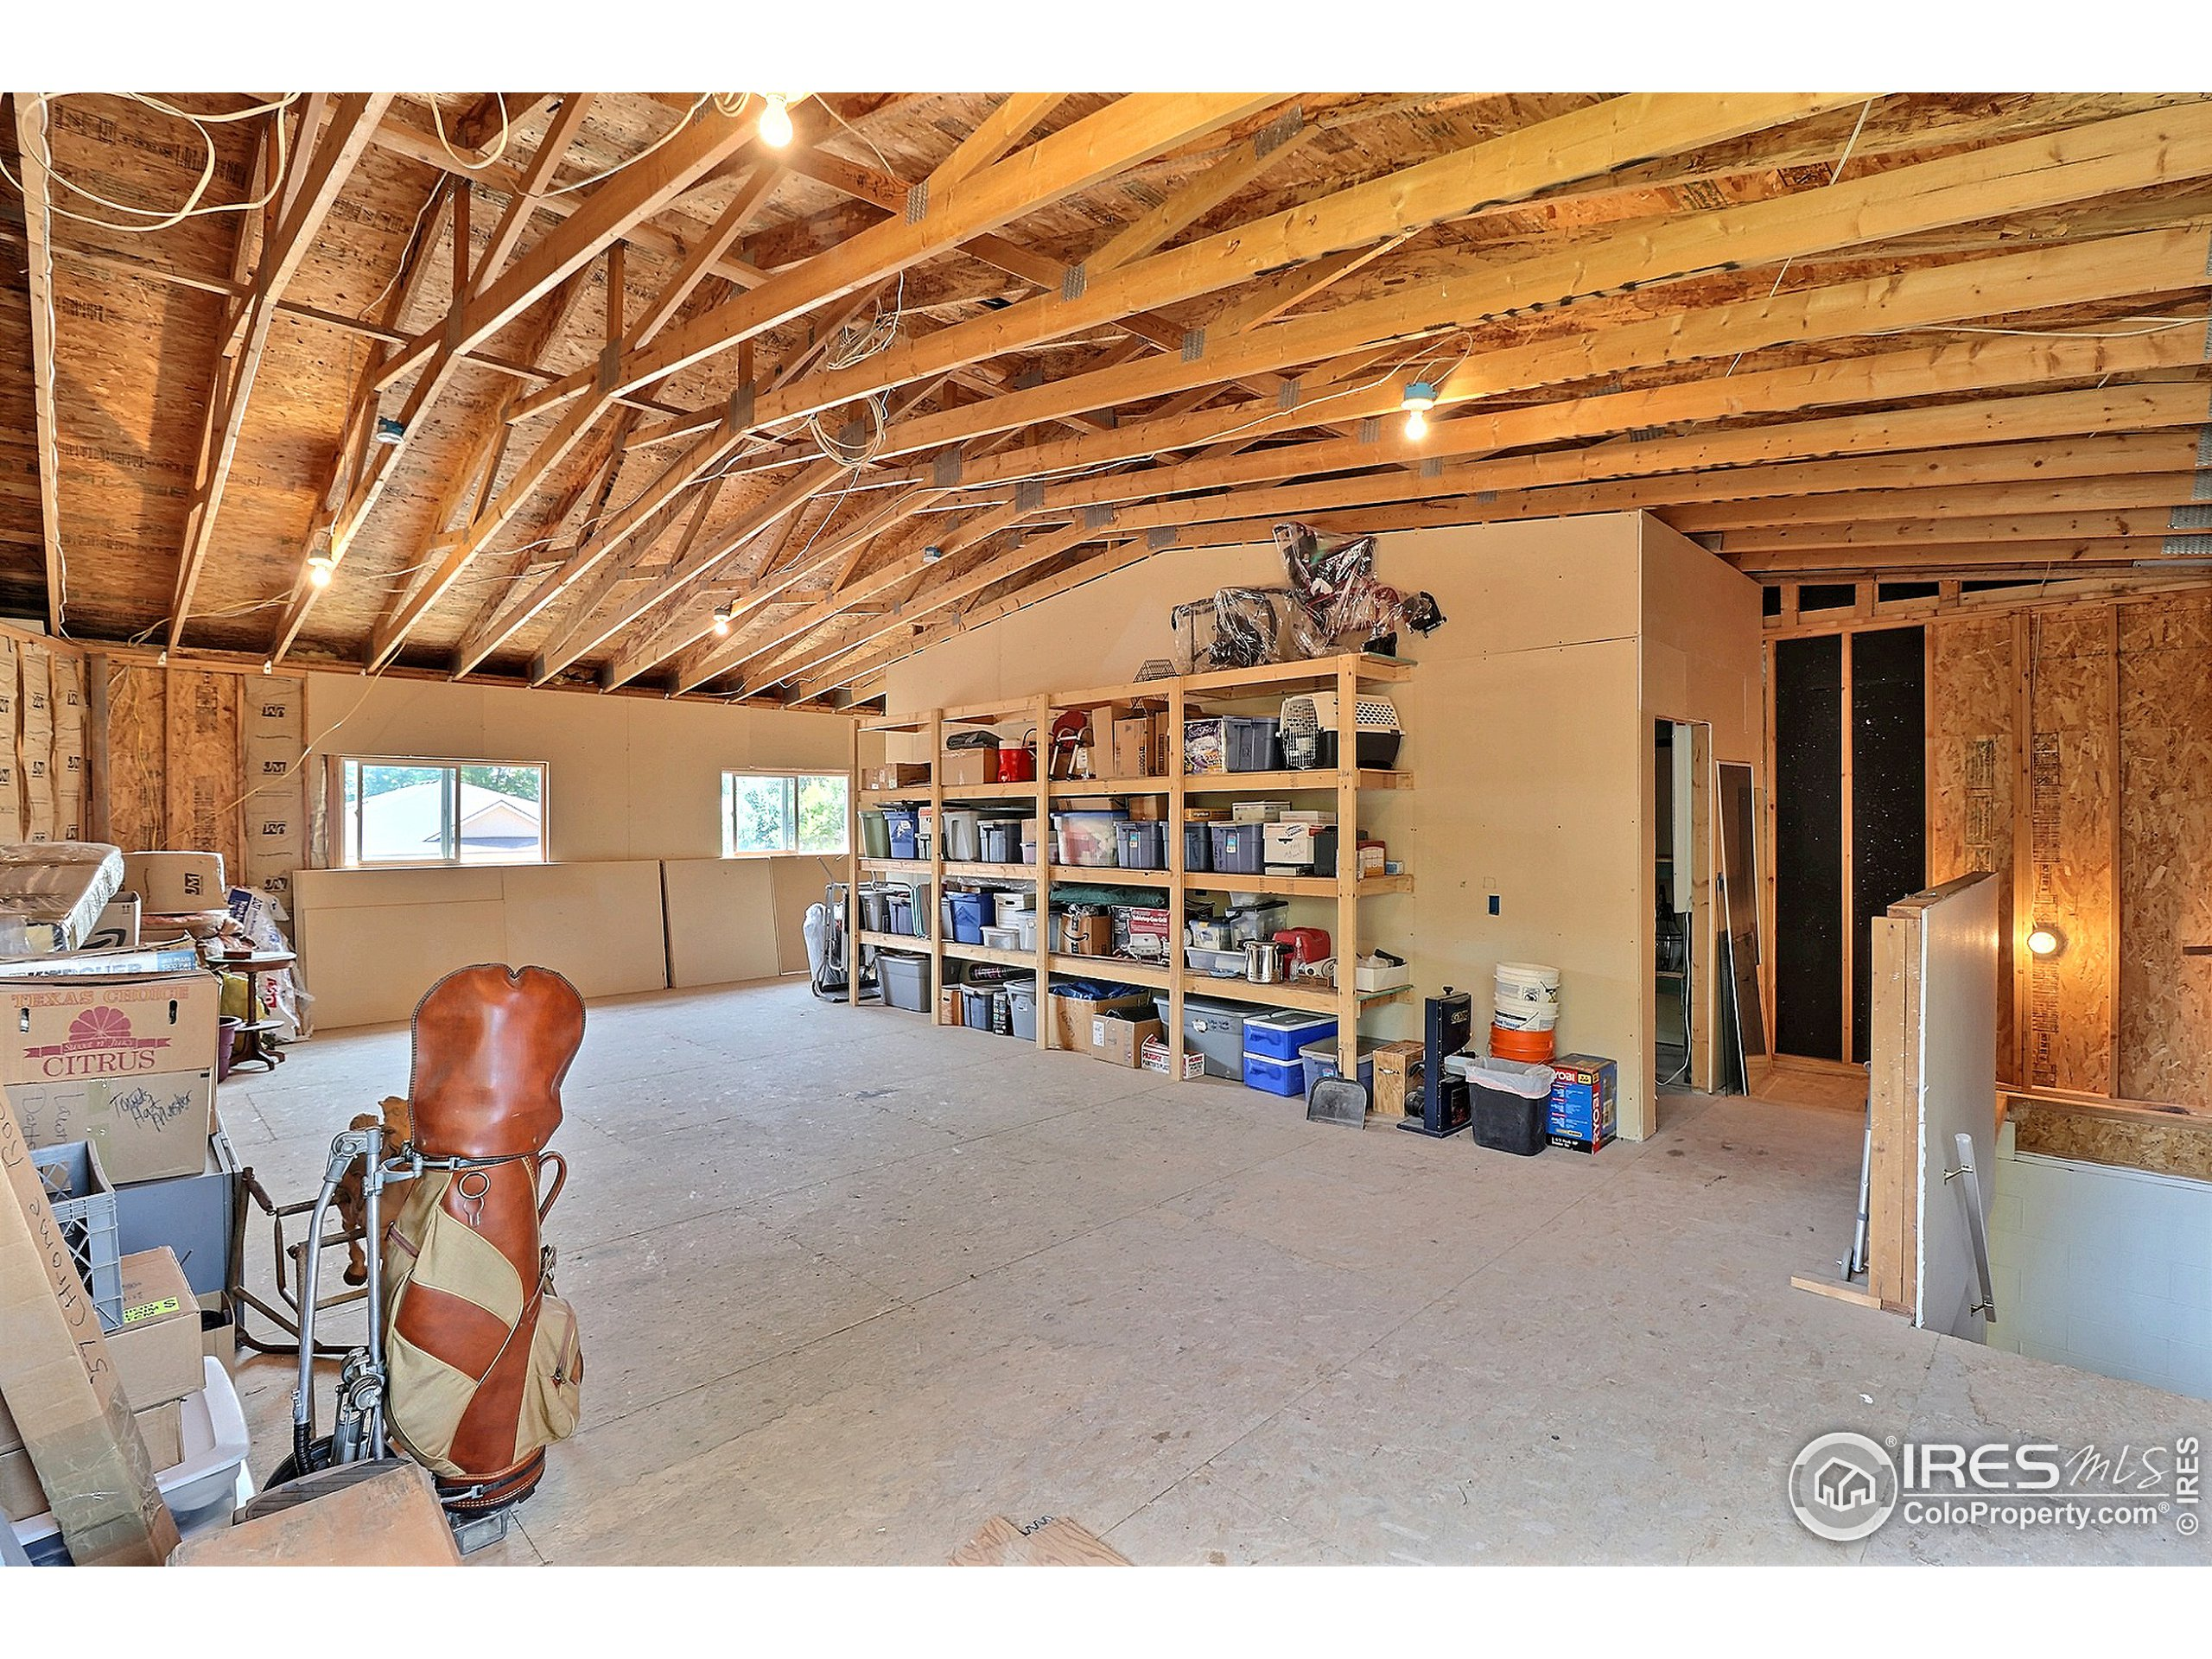 Be Sure to Check Out the Upper Level Loft!